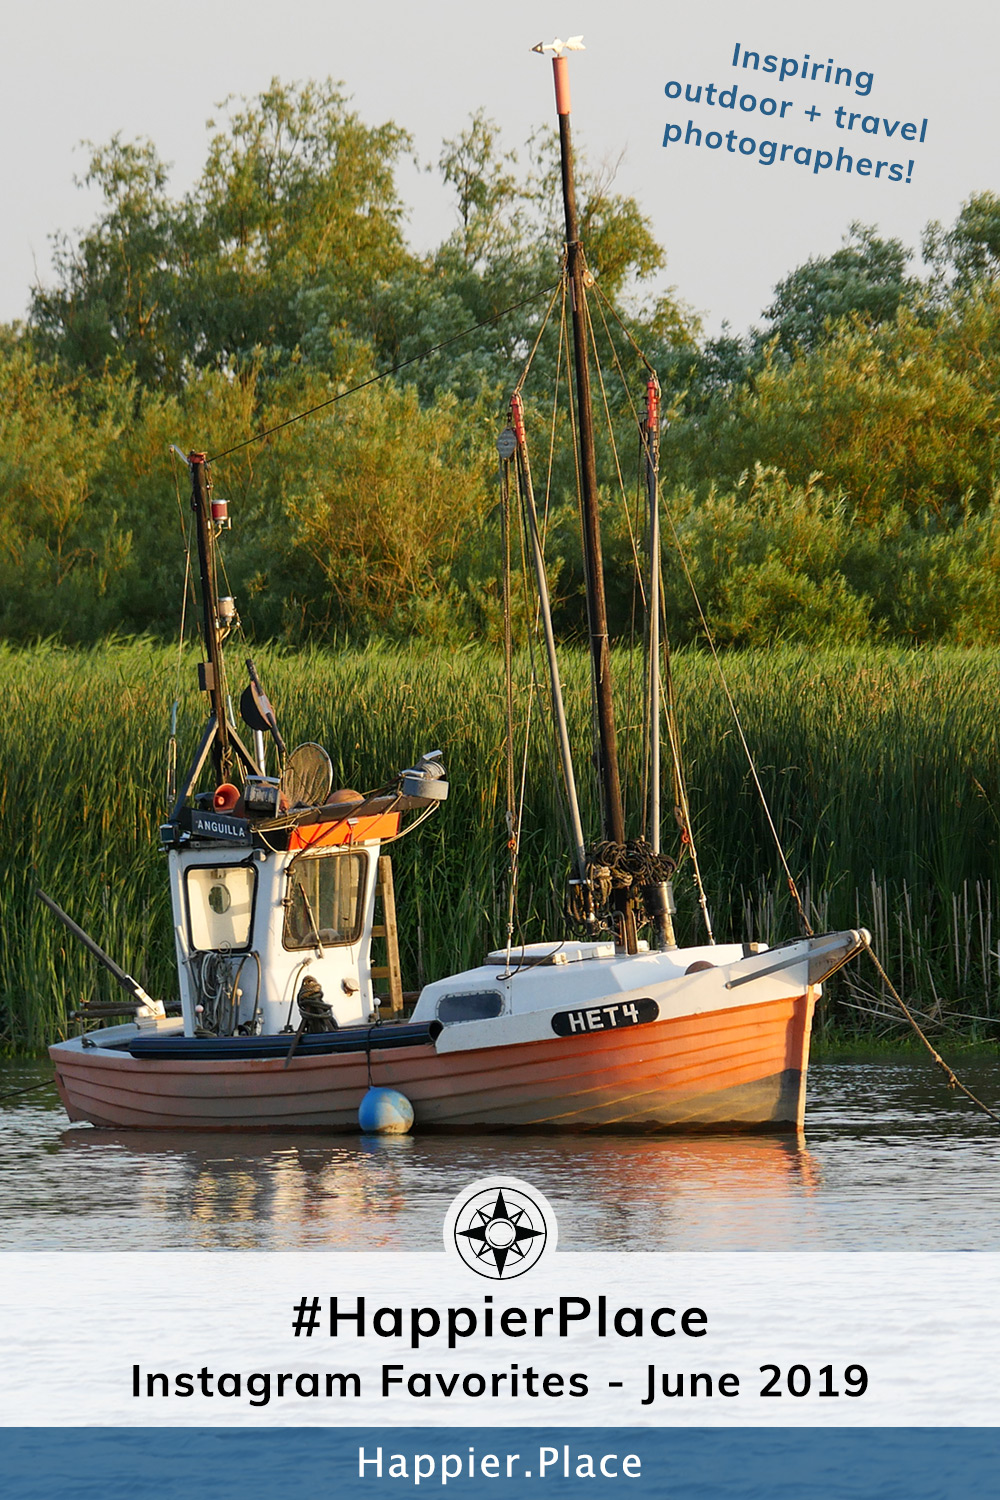 Classic German fishing boat representing #HappierPlace Instagram favorites for June 2019 - taken by inspiring outdoor and travel photographers from around the world! #Germany #Instagram #photography #travel #outdoors